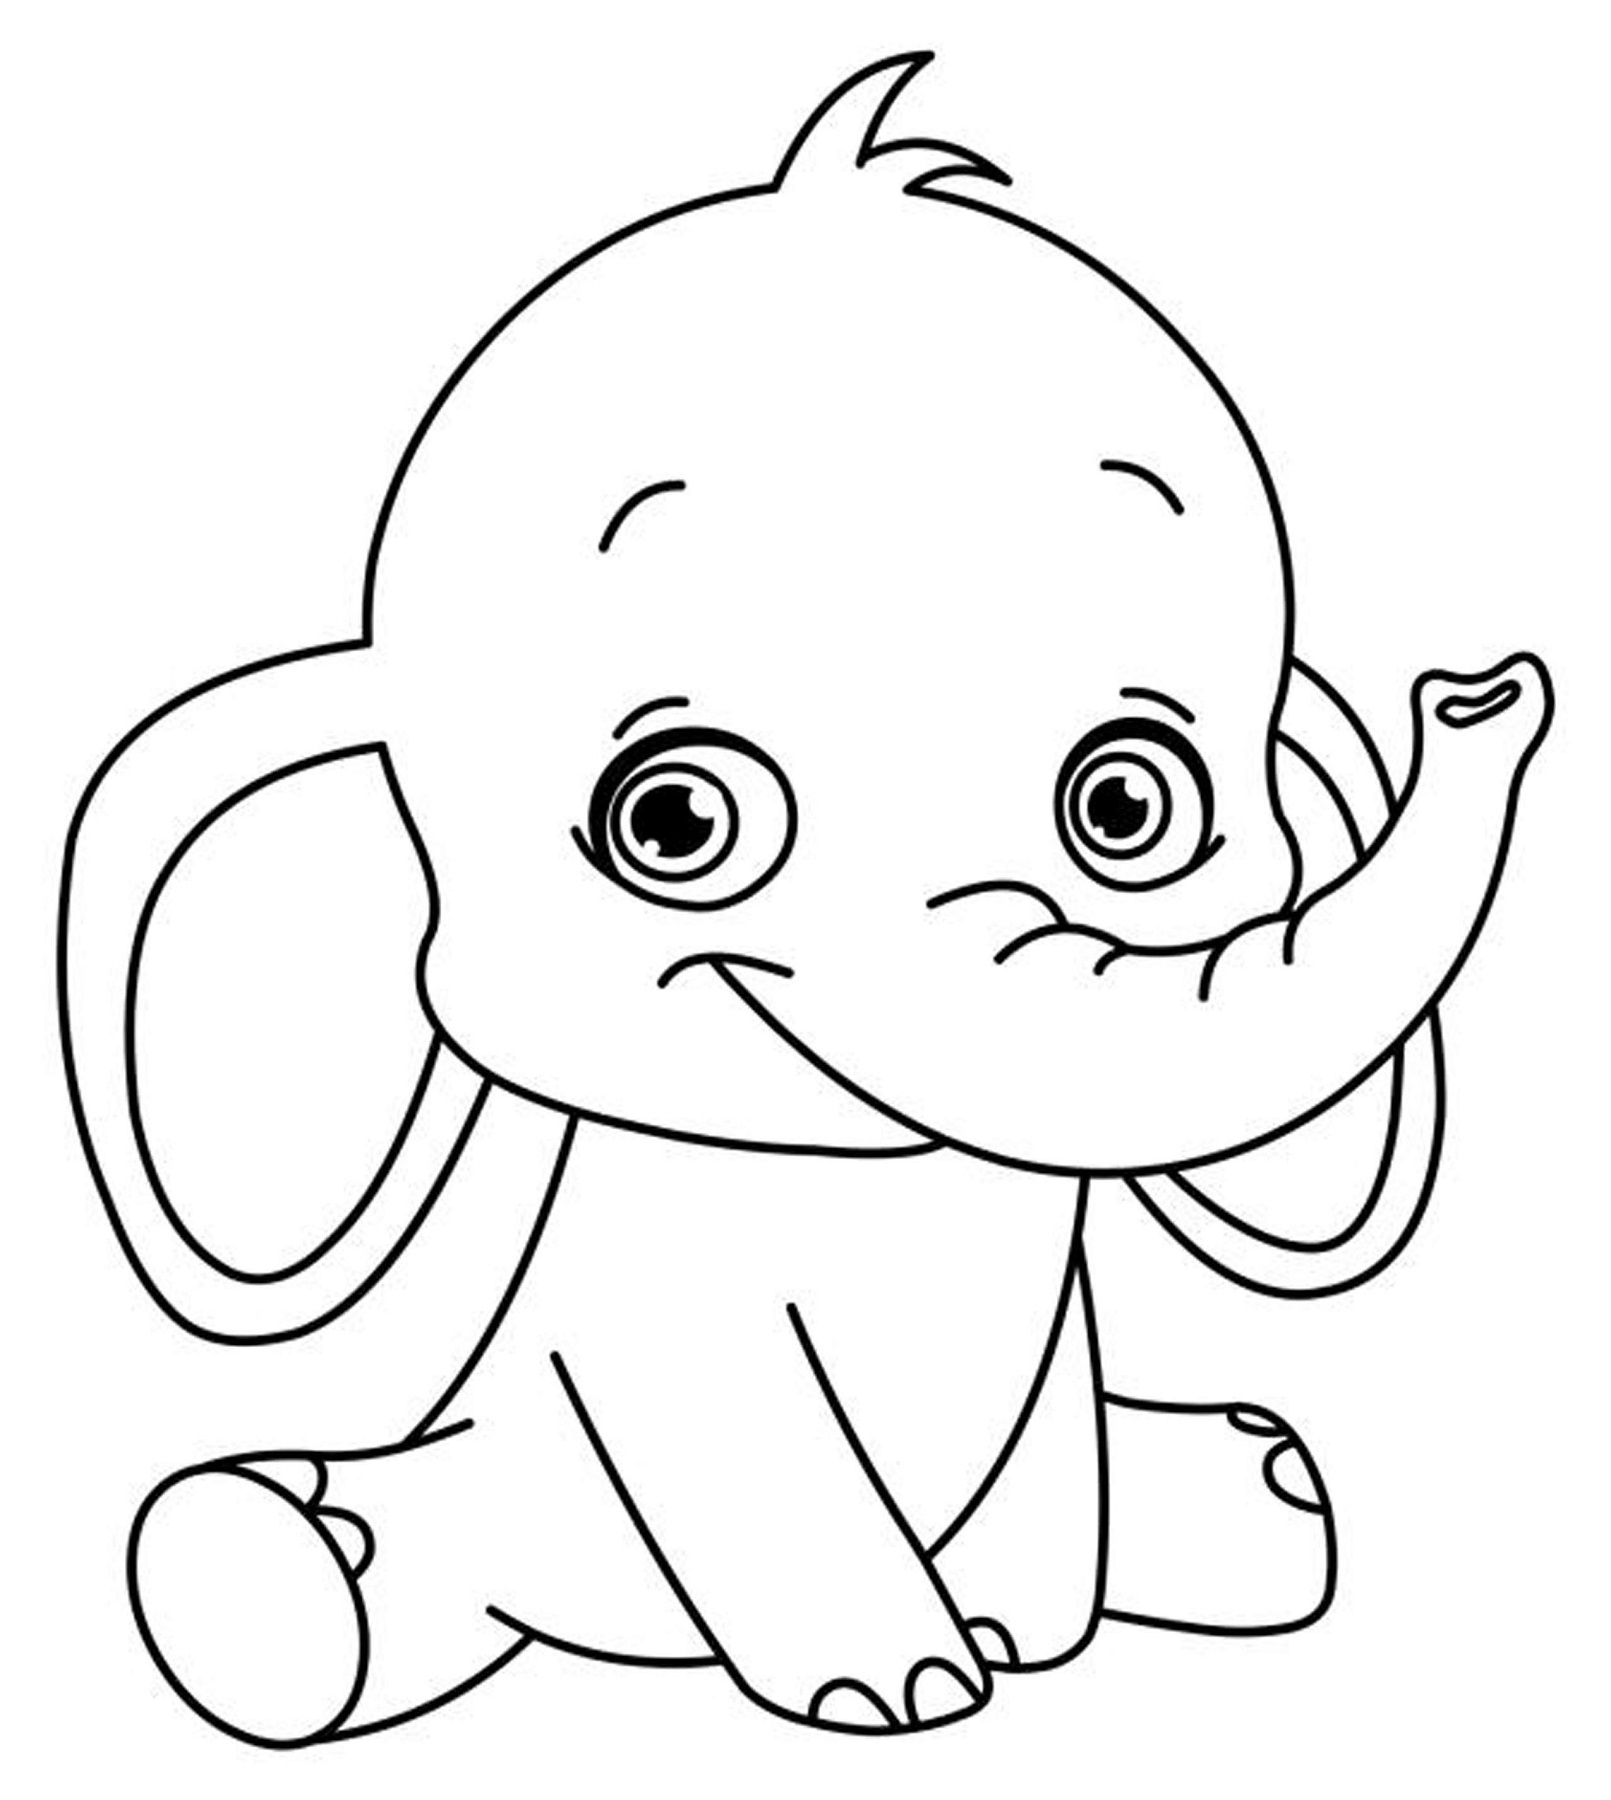 Childrens Colouring Pages to Print Elephant